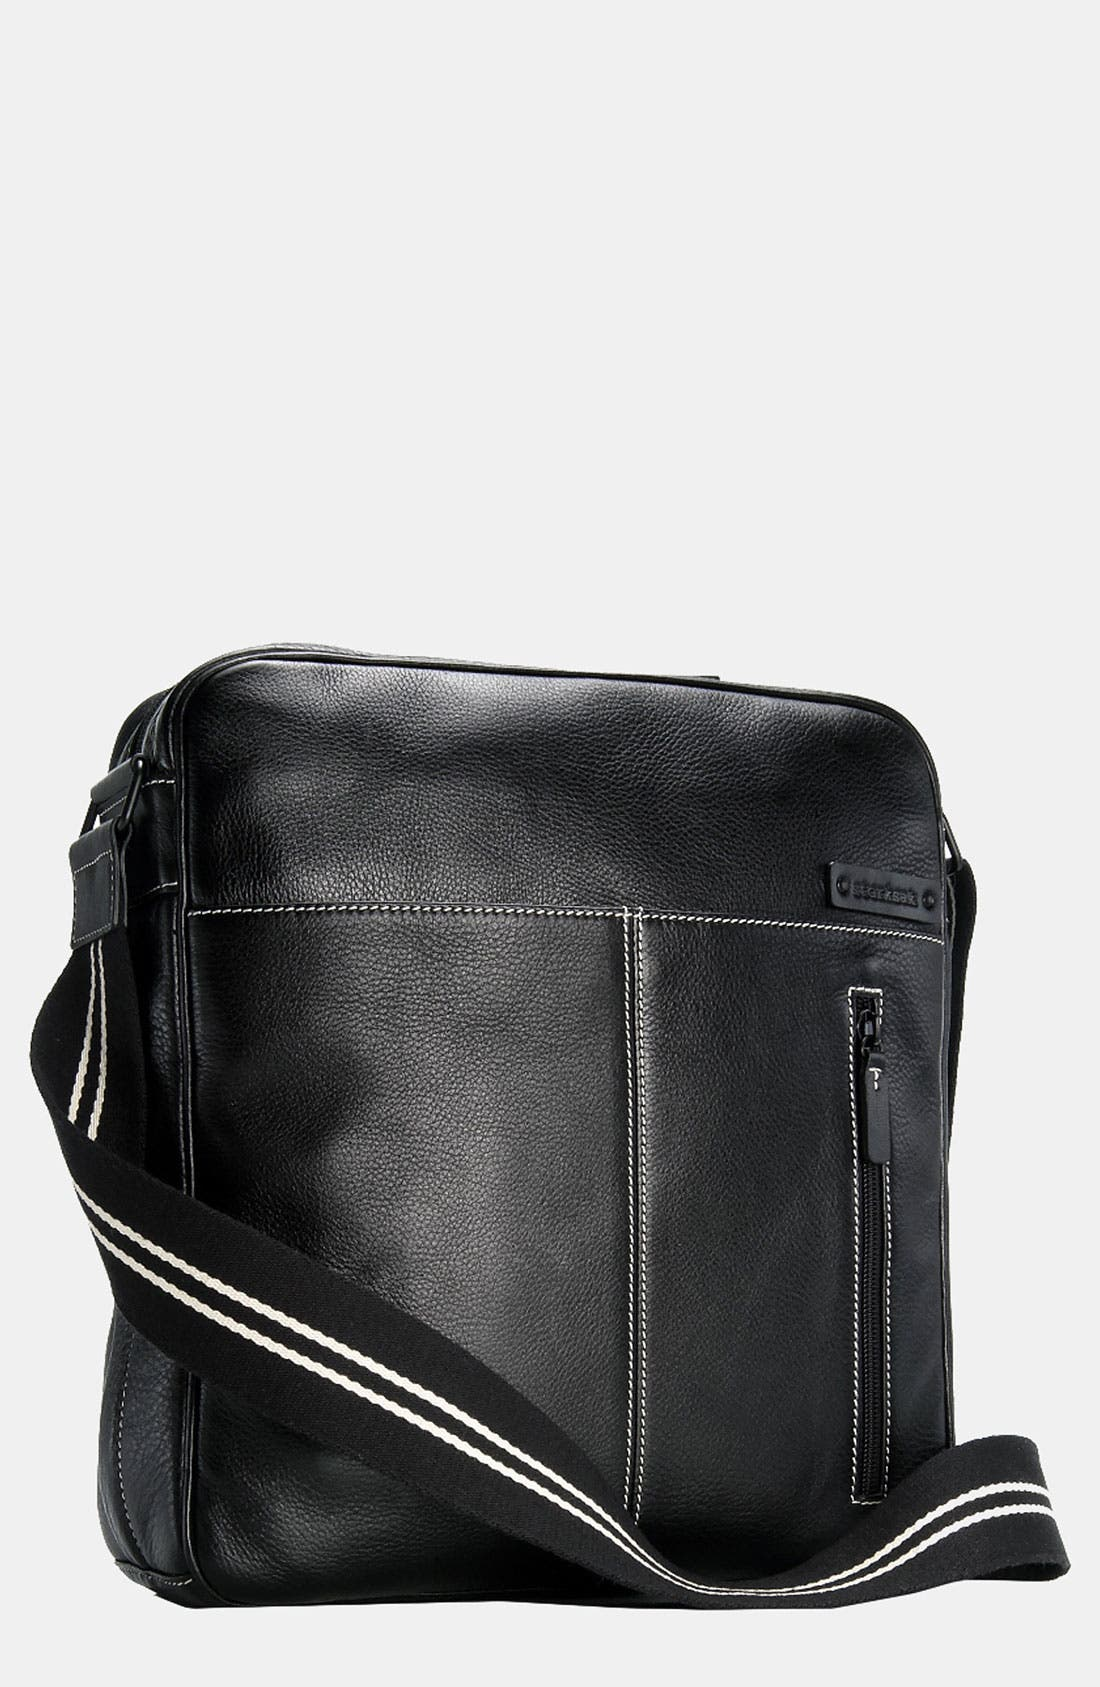 Alternate Image 1 Selected - Storksak 'Jamie' Leather Diaper Bag